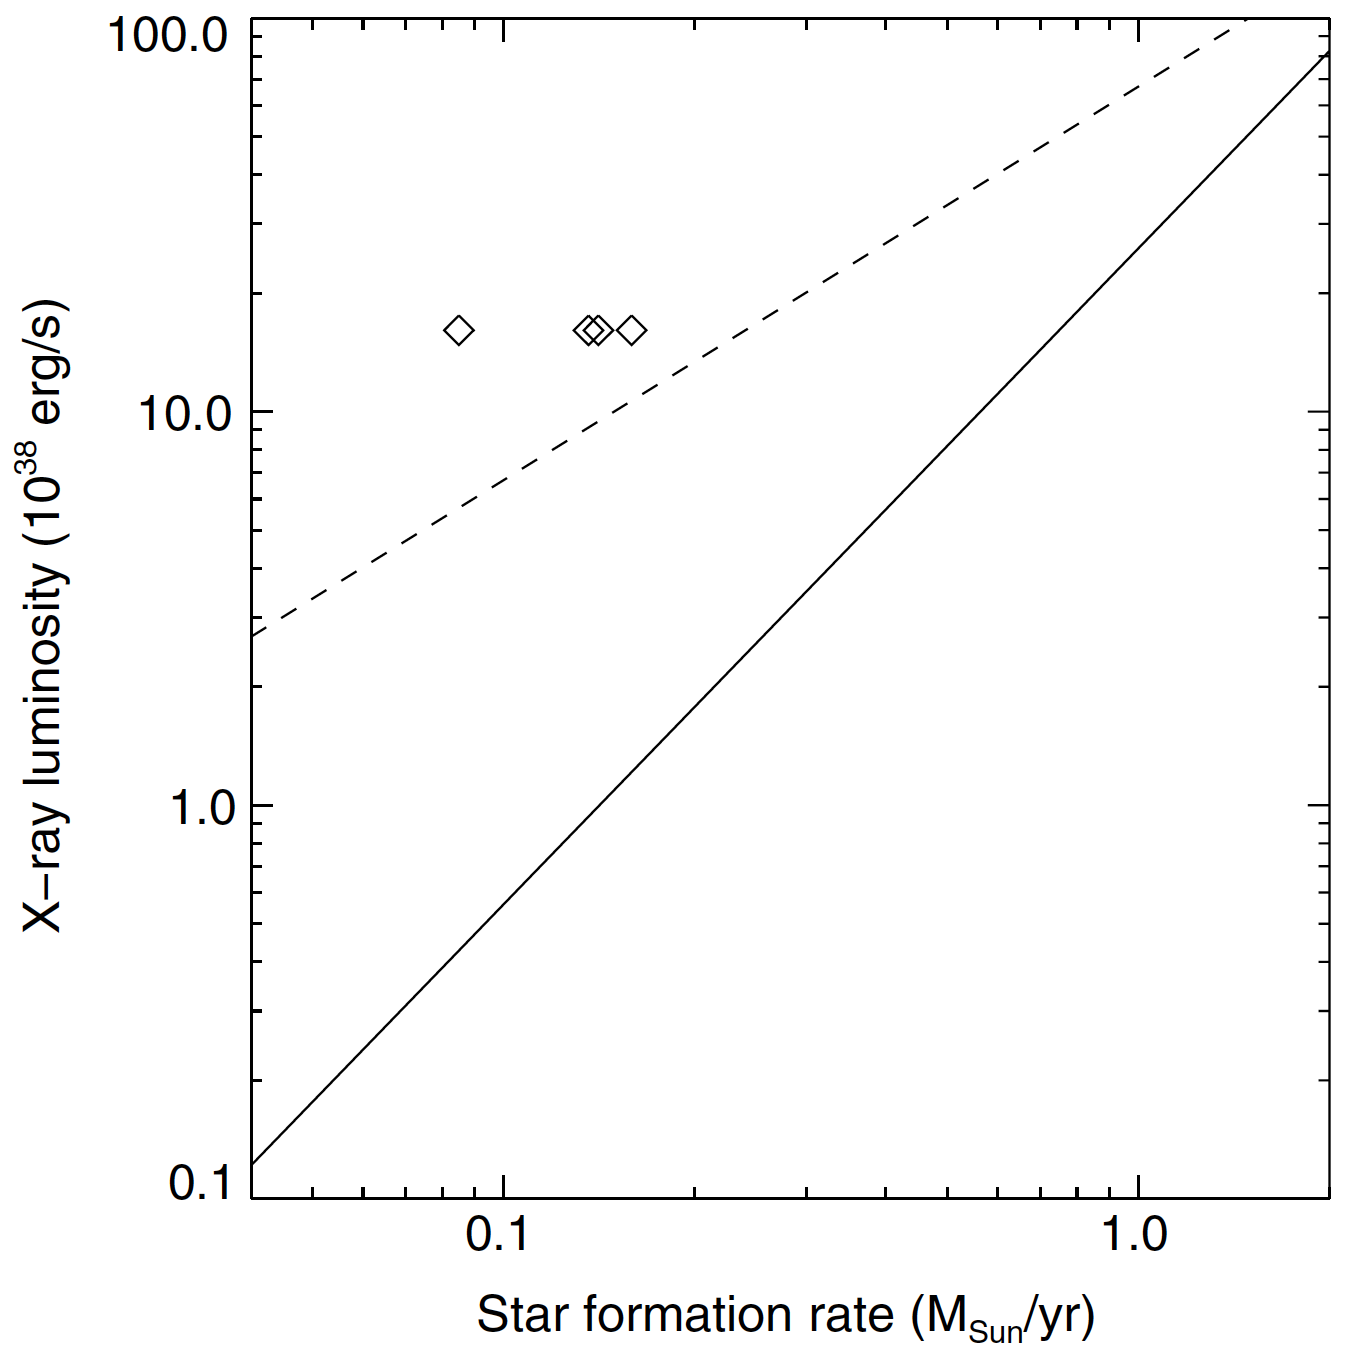 The observed X-ray luminosity was more than the predictions of two different models.